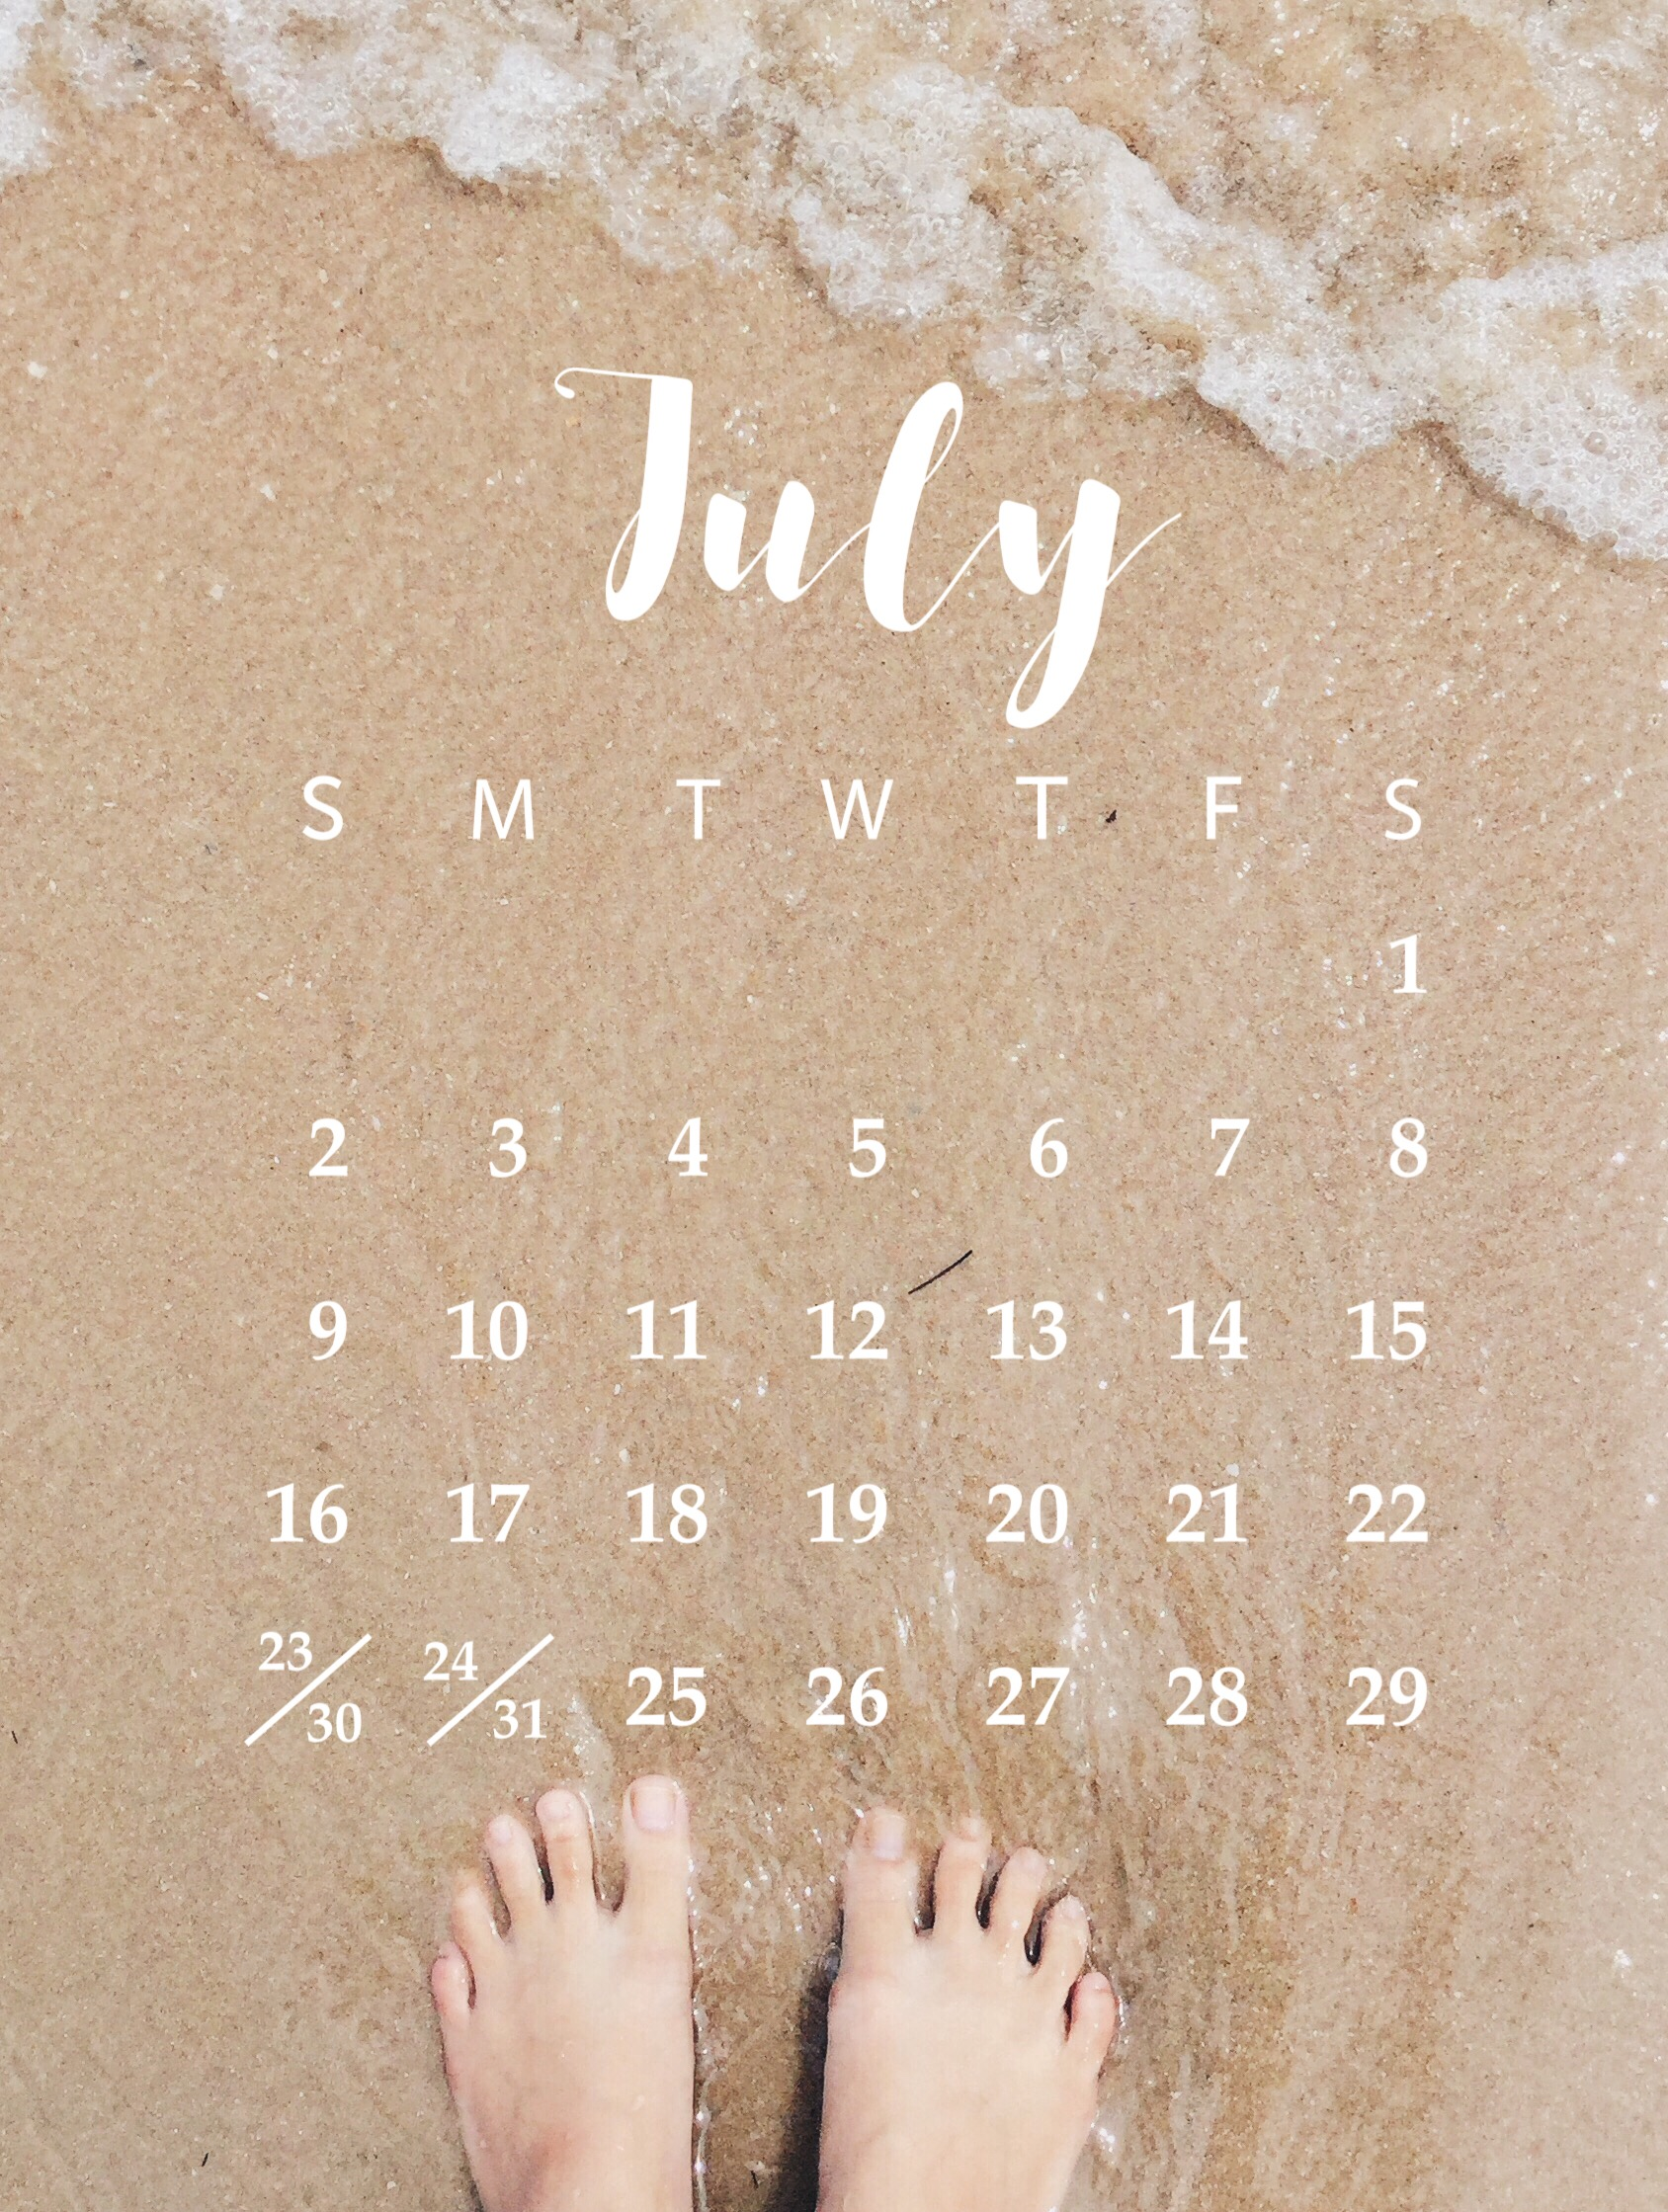 Custom Calendars made with the PicsArt Photo Editor and Collage Maker